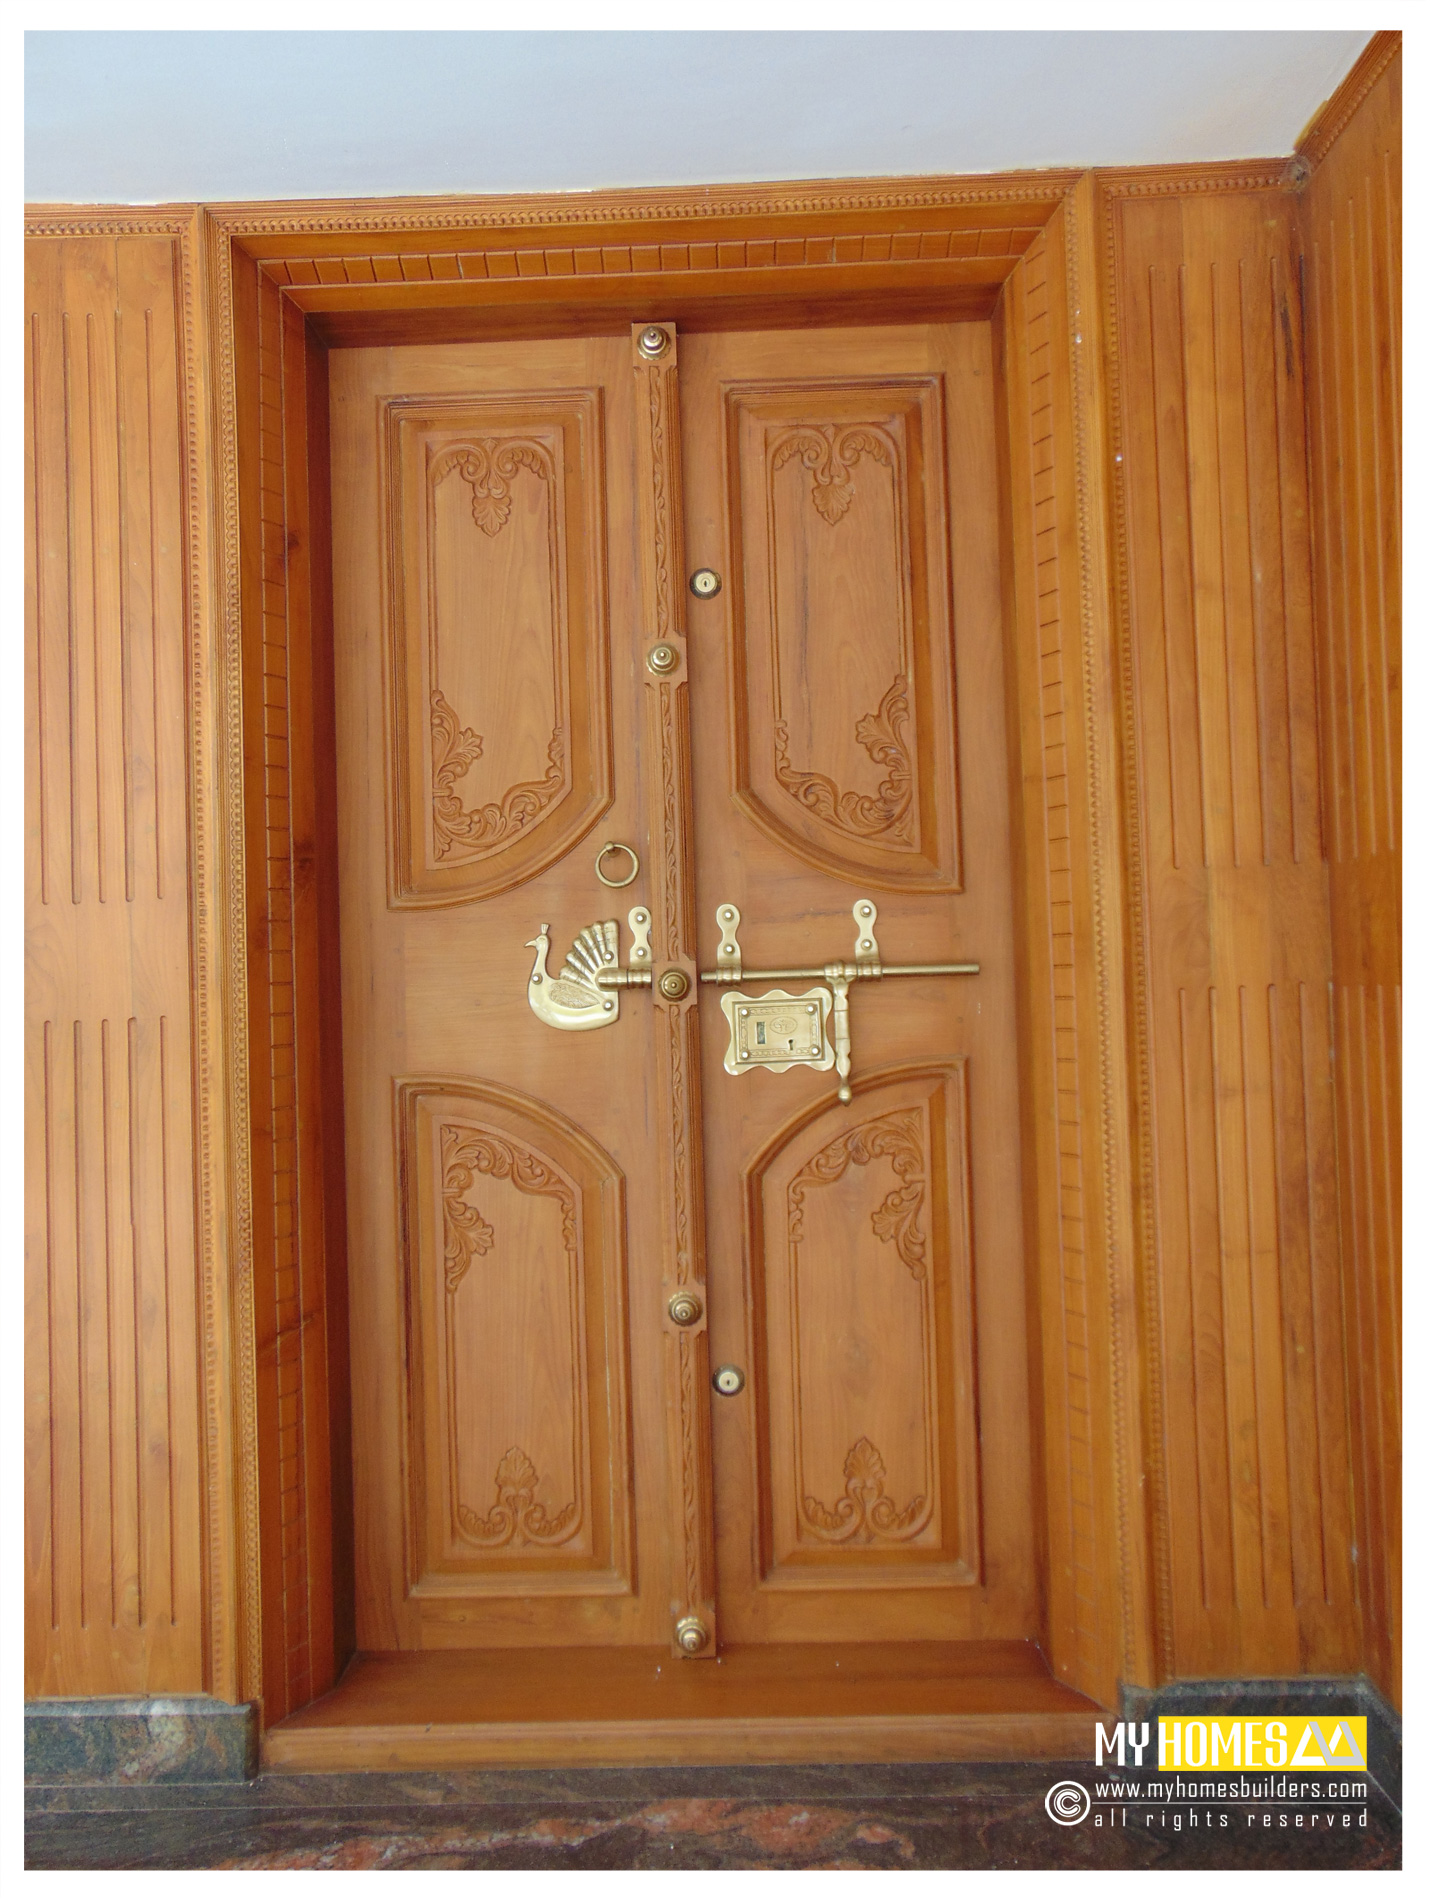 New idea for homes main door designs in kerala india for Front door frame designs